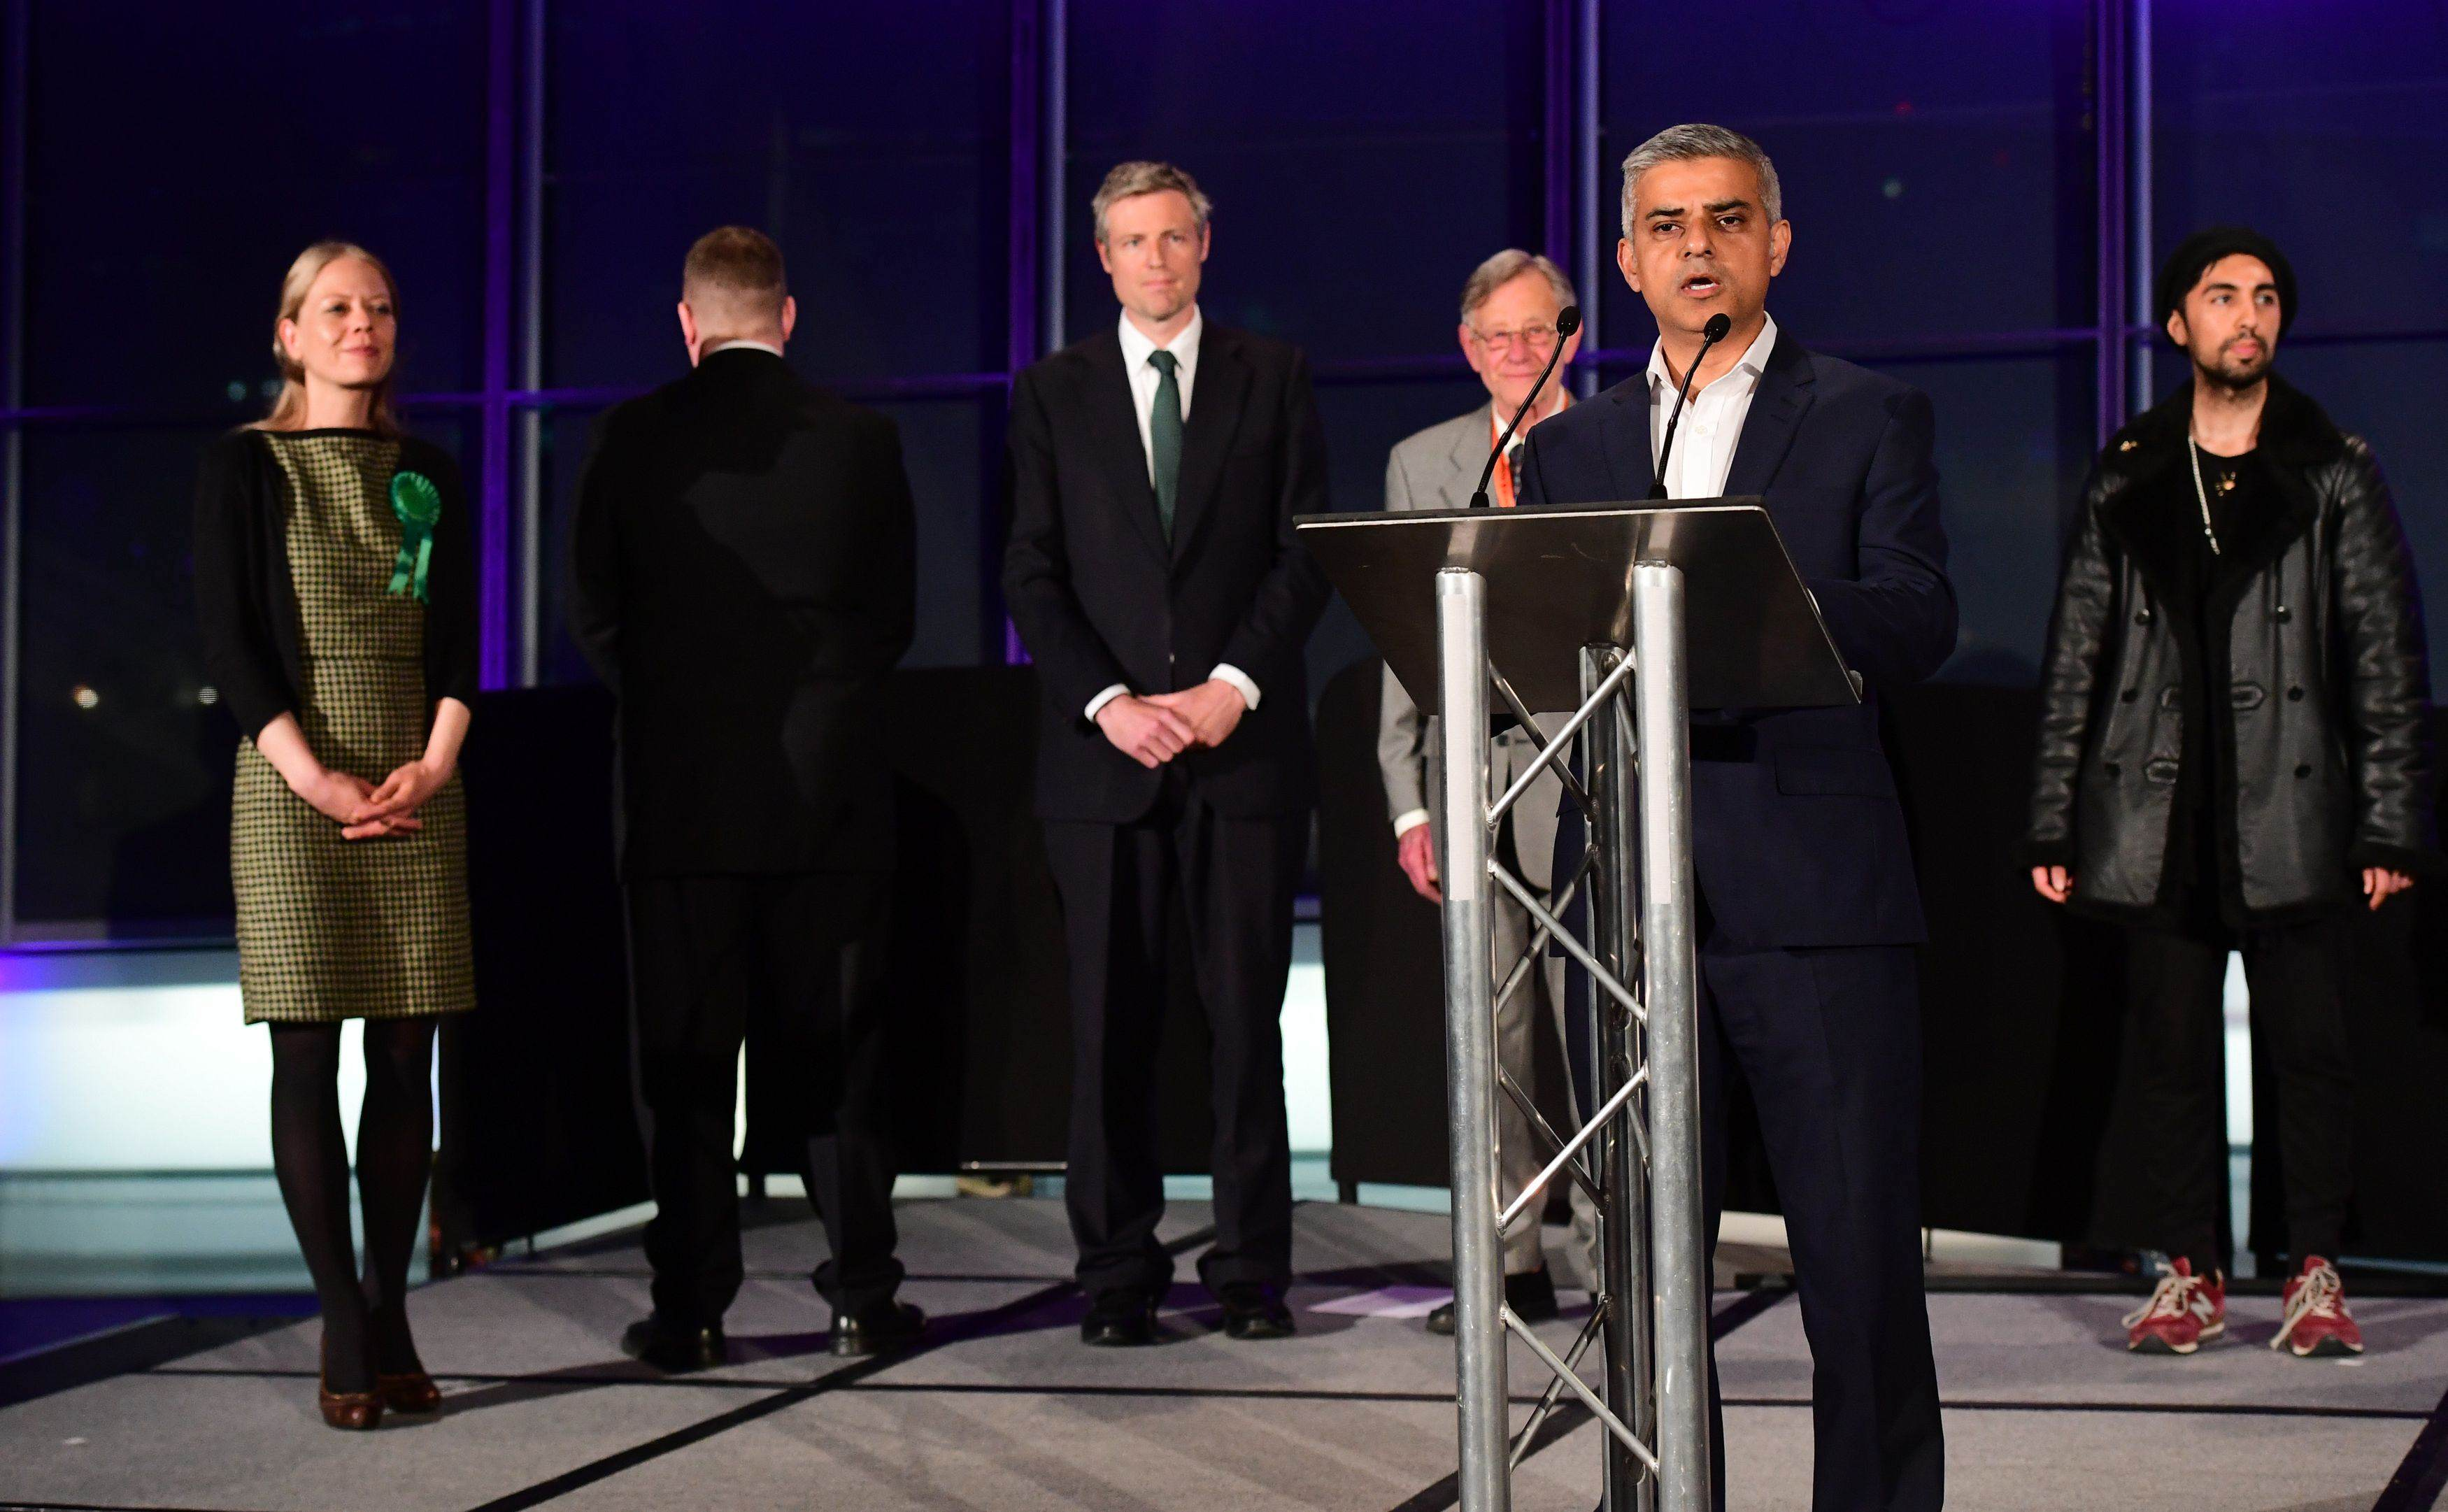 London Mayor election